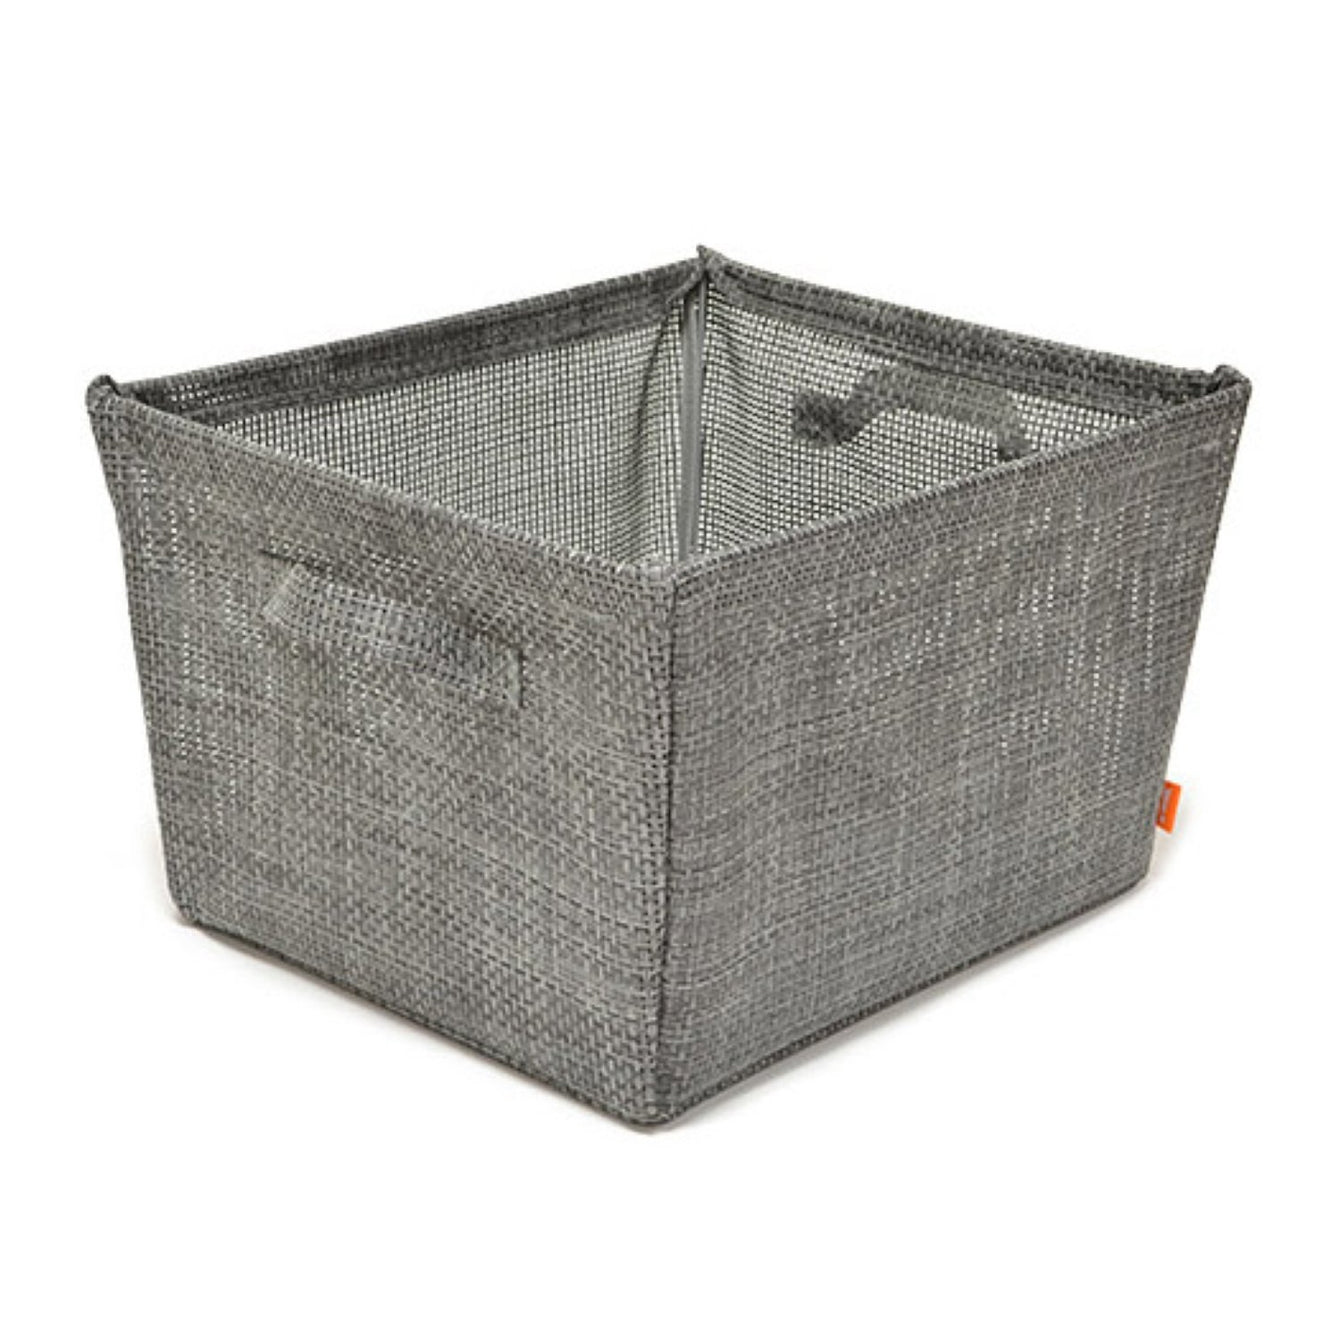 Set of 4 Large Woven Storage Bin